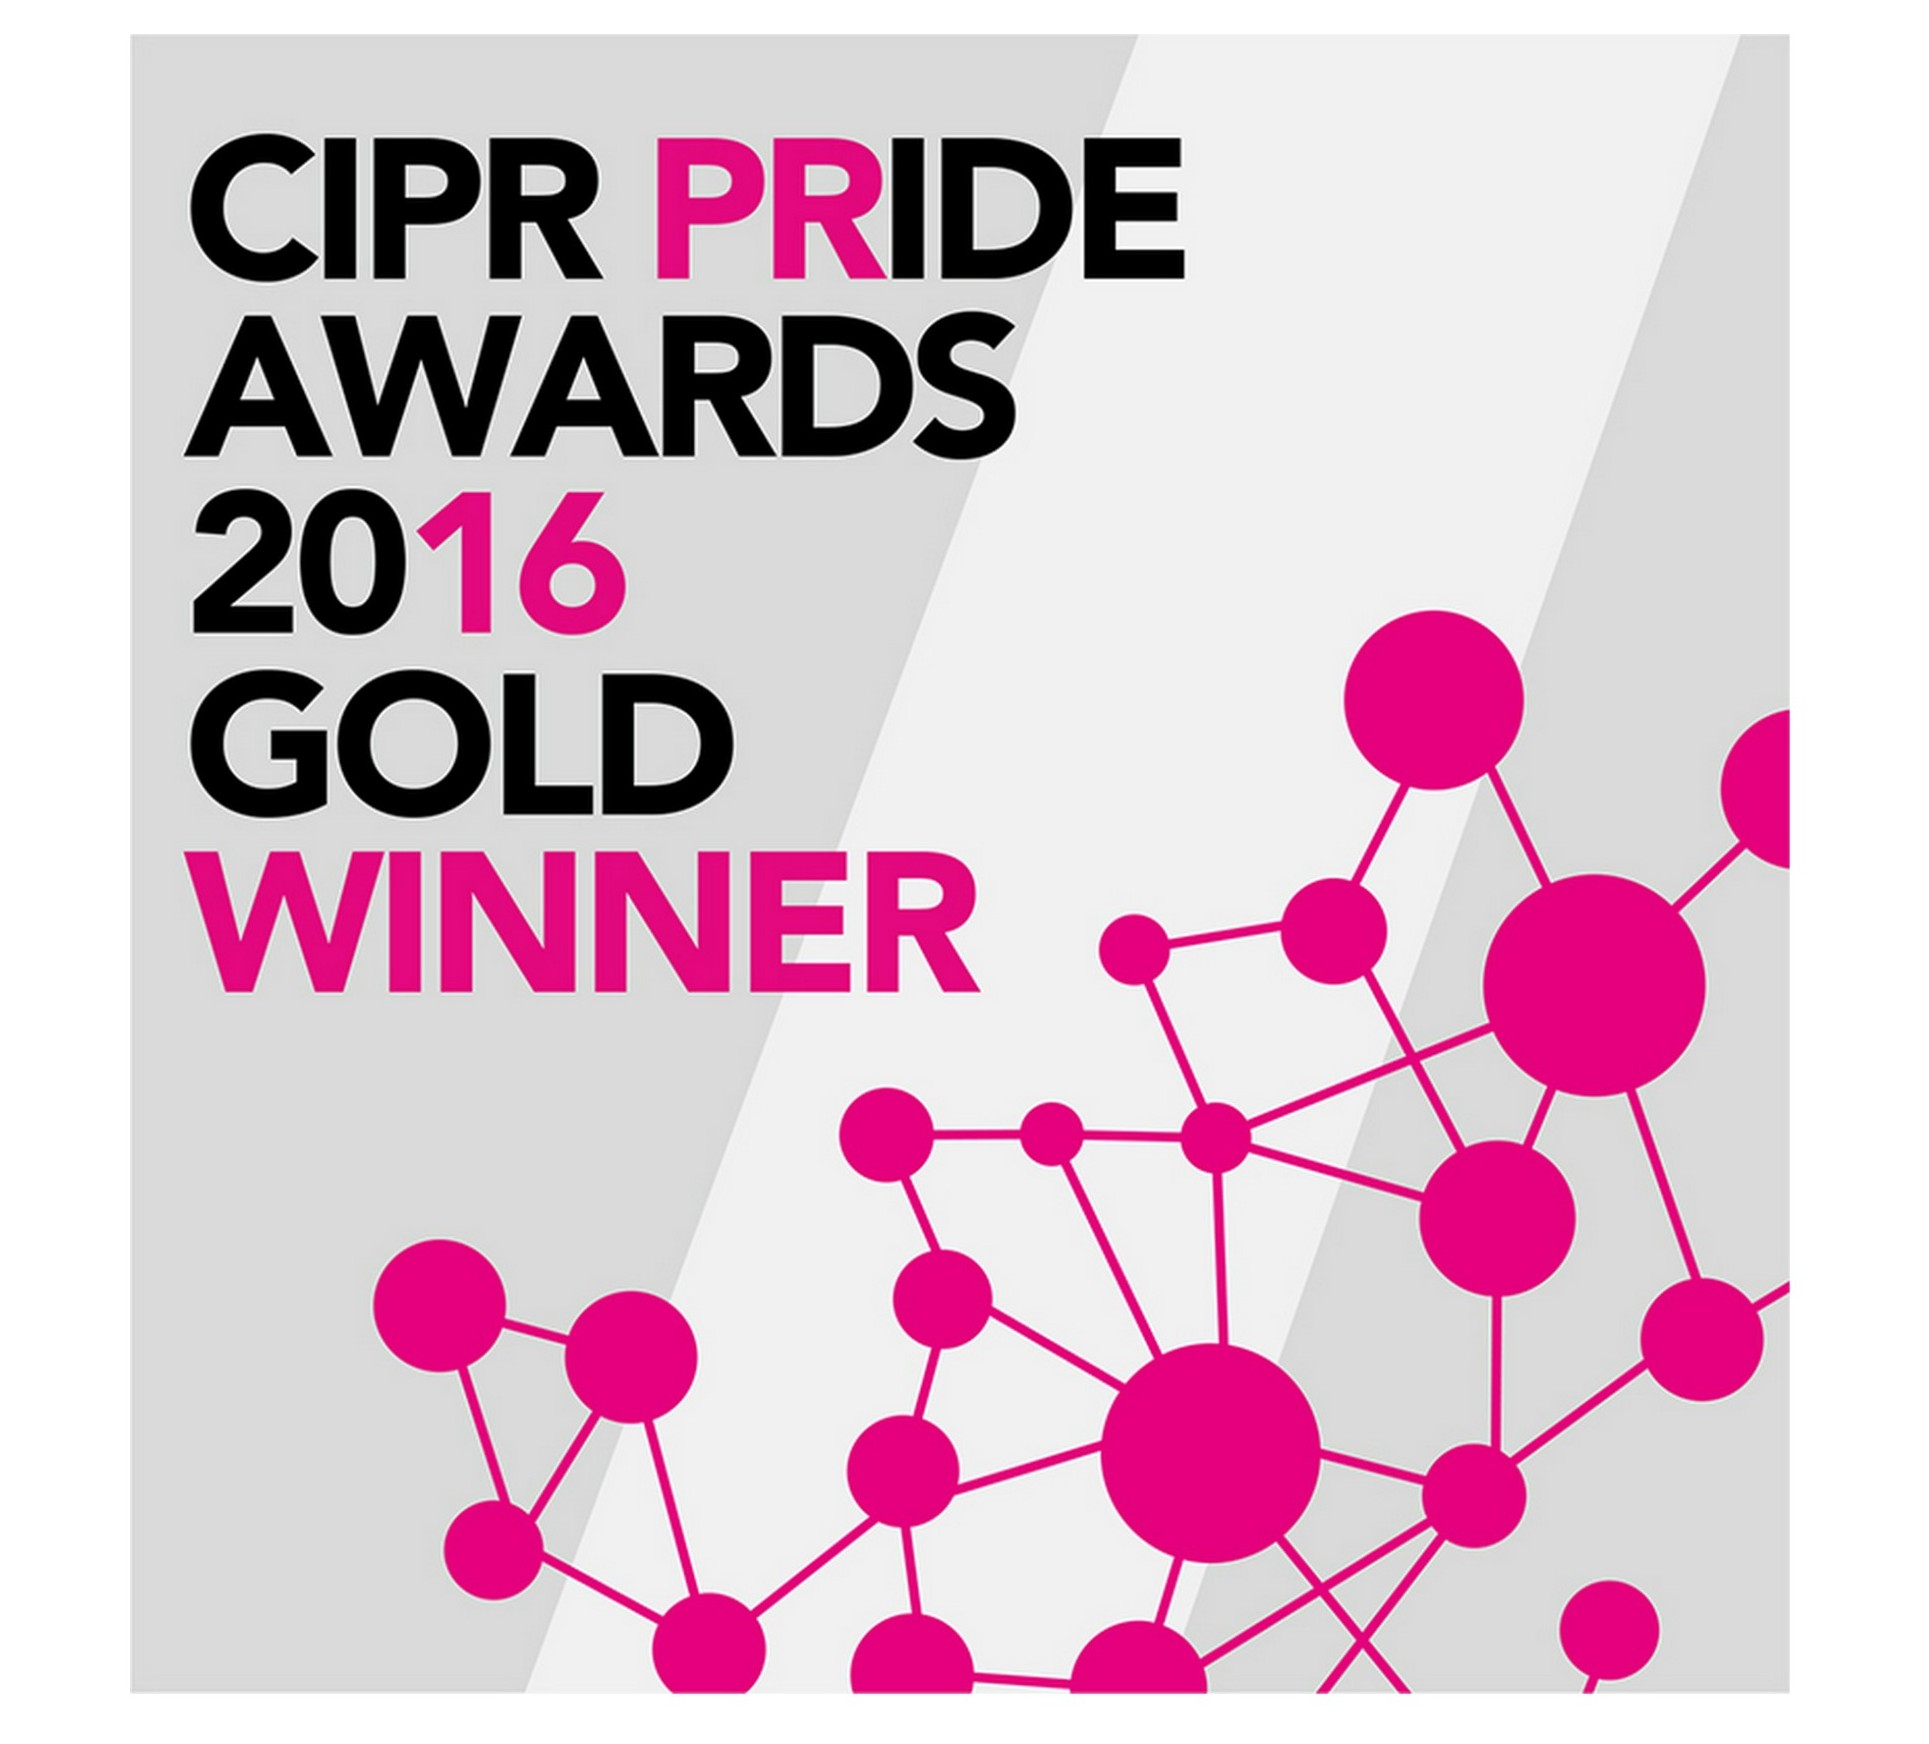 cipr-pride-awards-2016